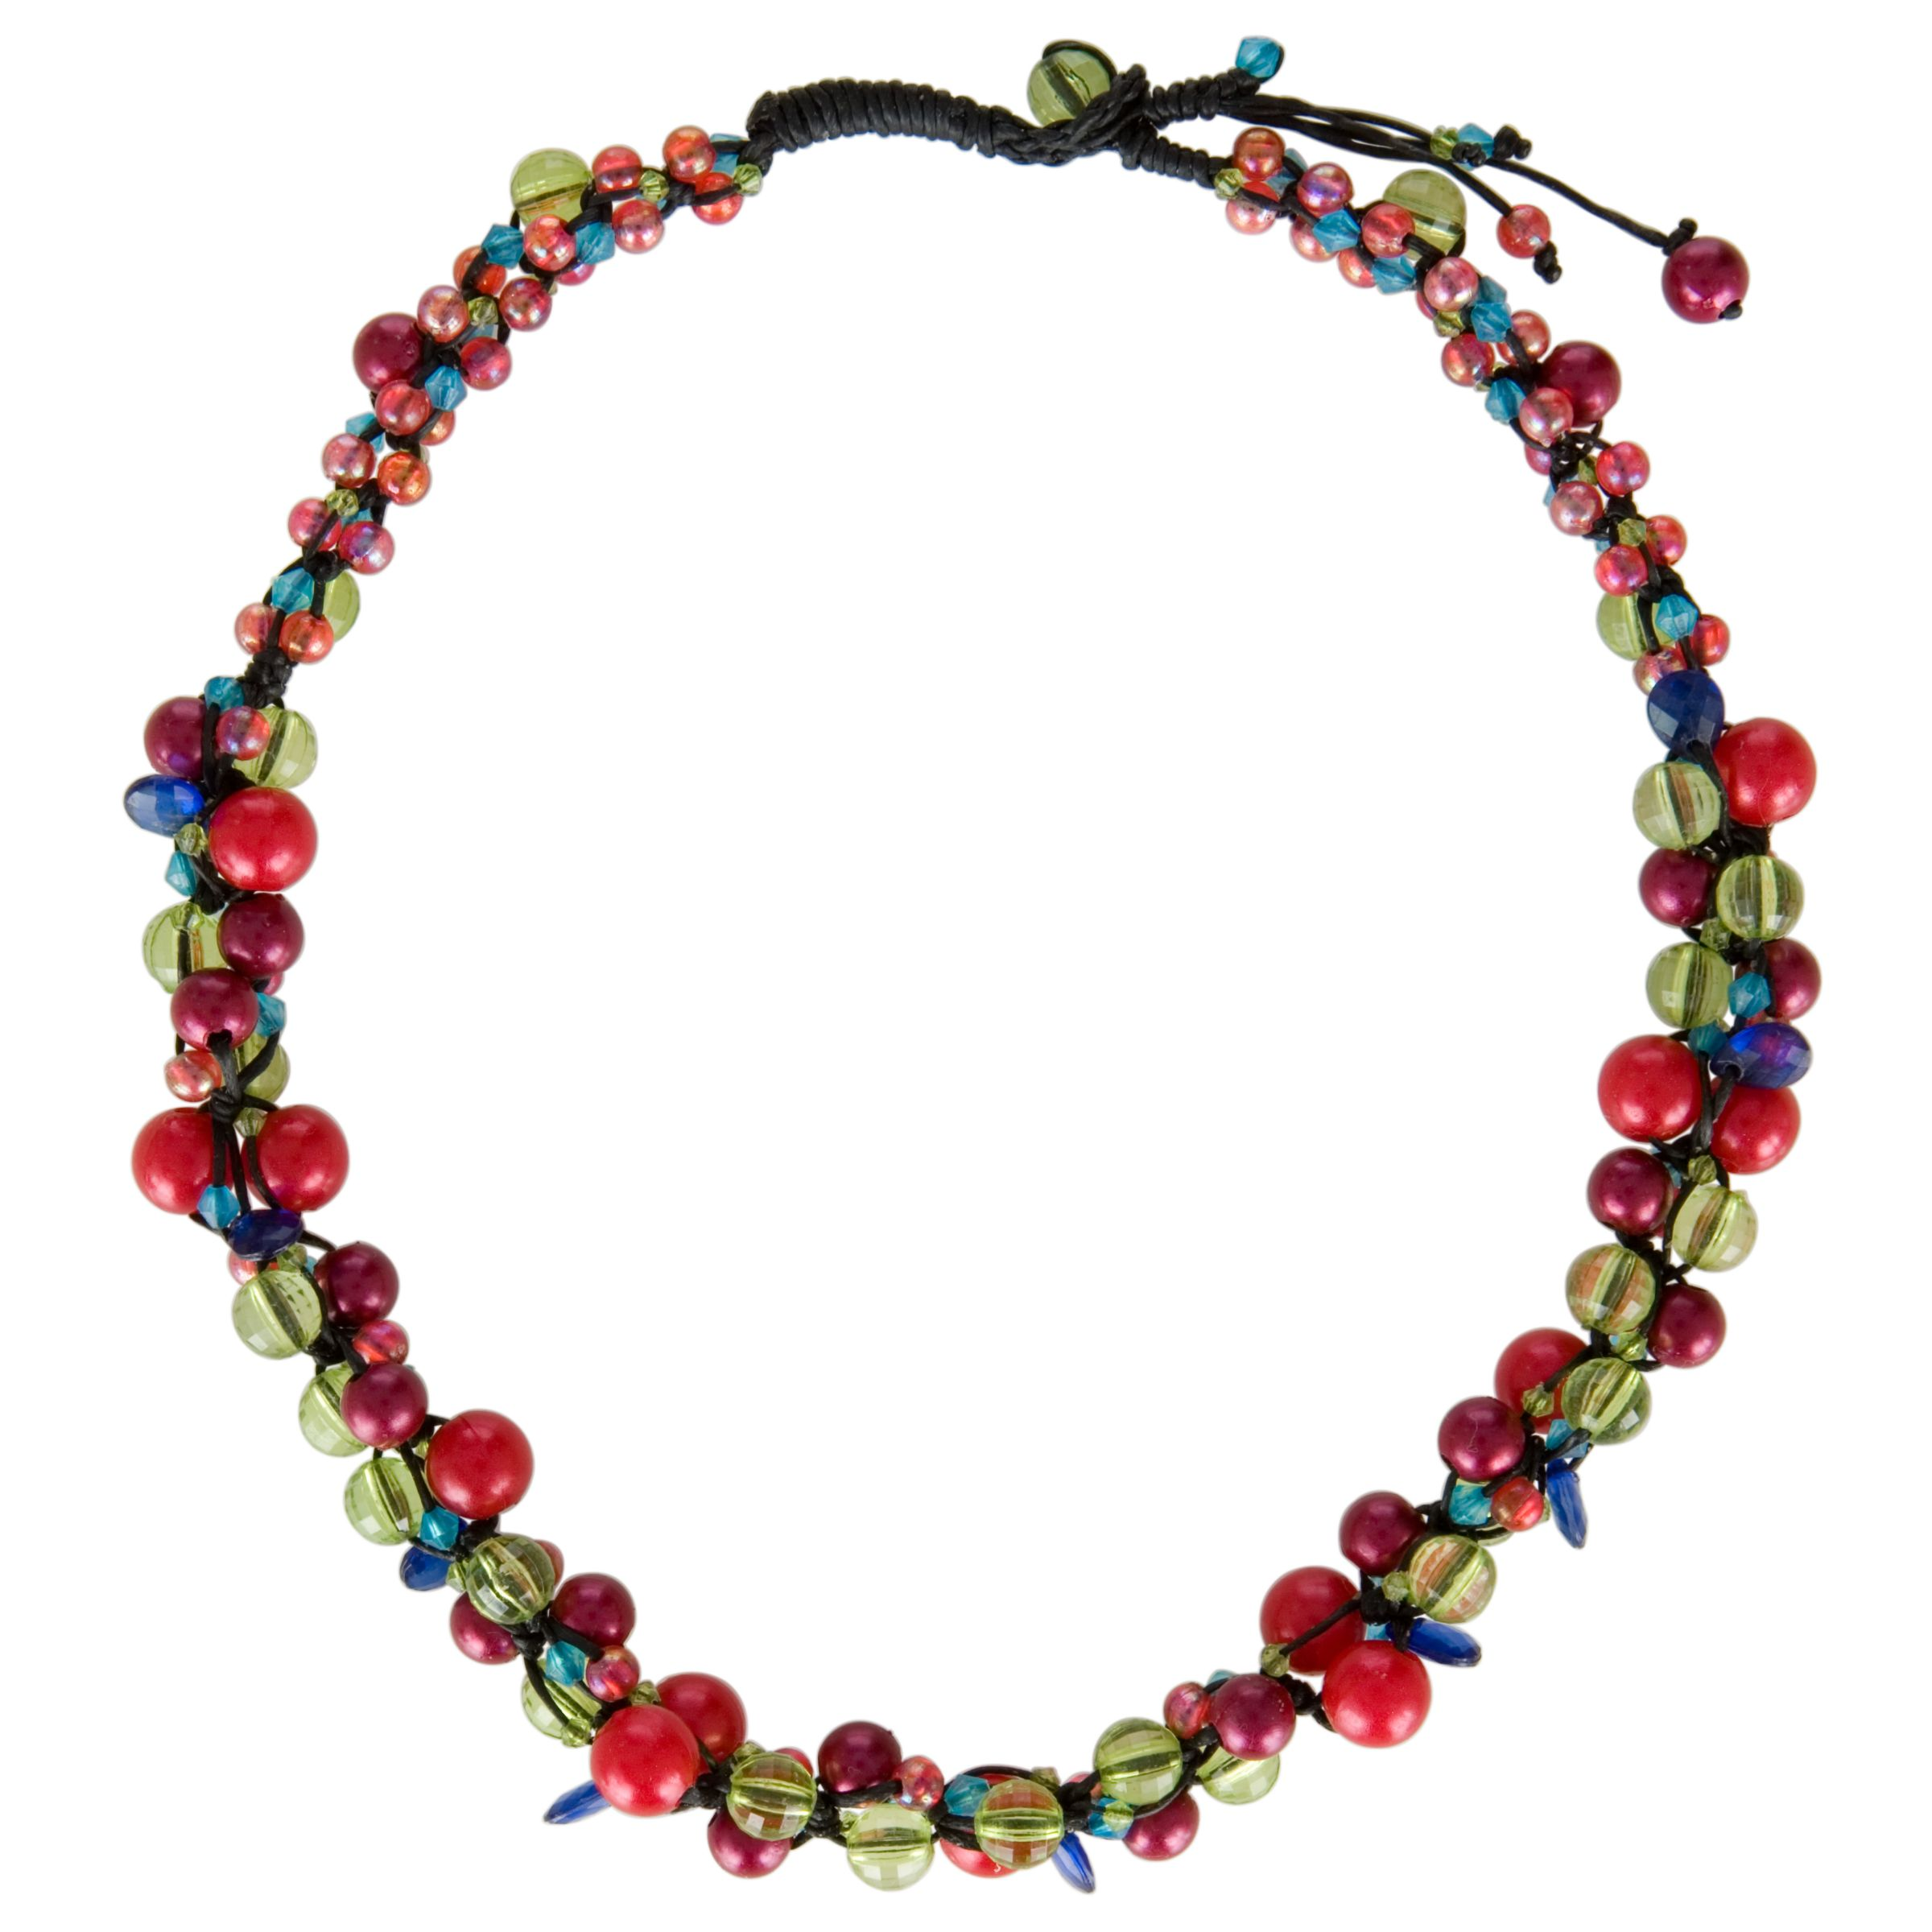 One Button Assorted Bead Cluster Woven Necklace, Lime/Assorted